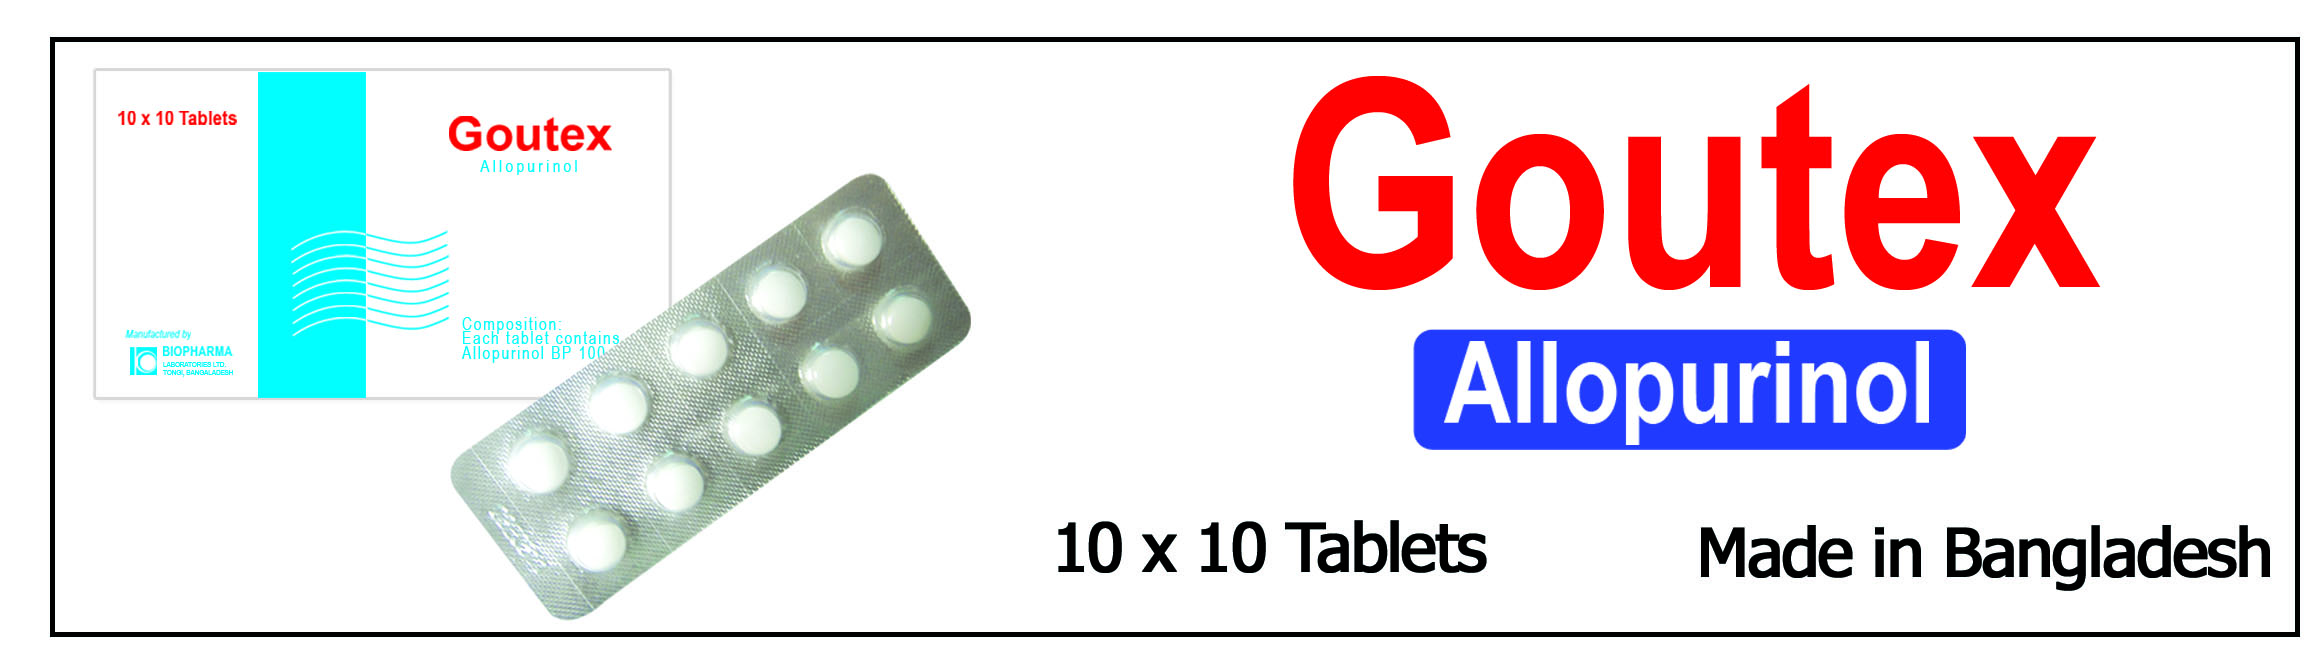 Goutex Tablet